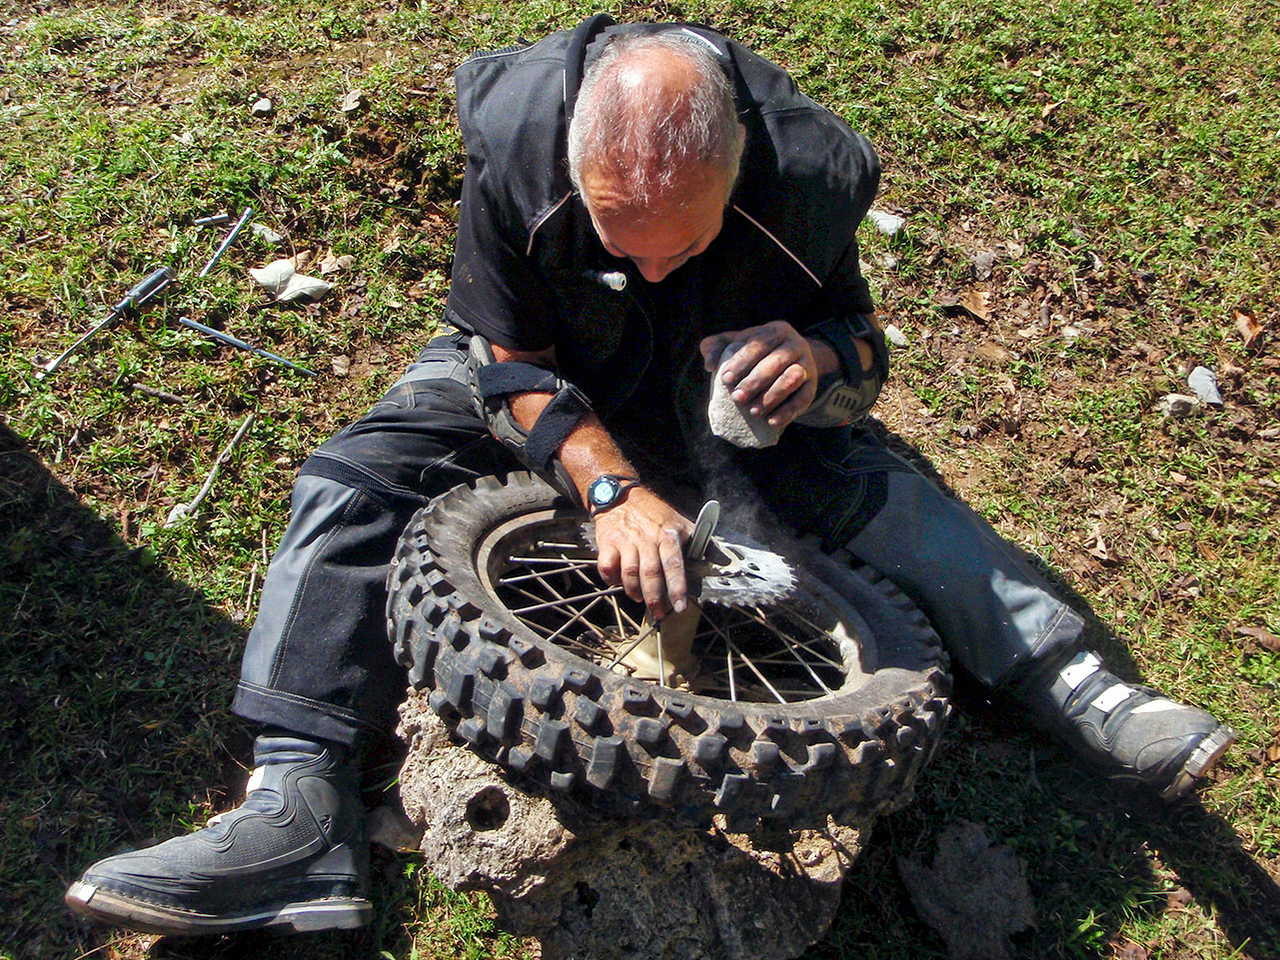 """Joe was pretty resourceful. Photo courtesy of <a href=""""http://advrider.com/forums/showpost.php?p=8258435&postcount=95""""><strong><span style=""""color:#5DFC0A"""">Anja</span></strong></a>"""